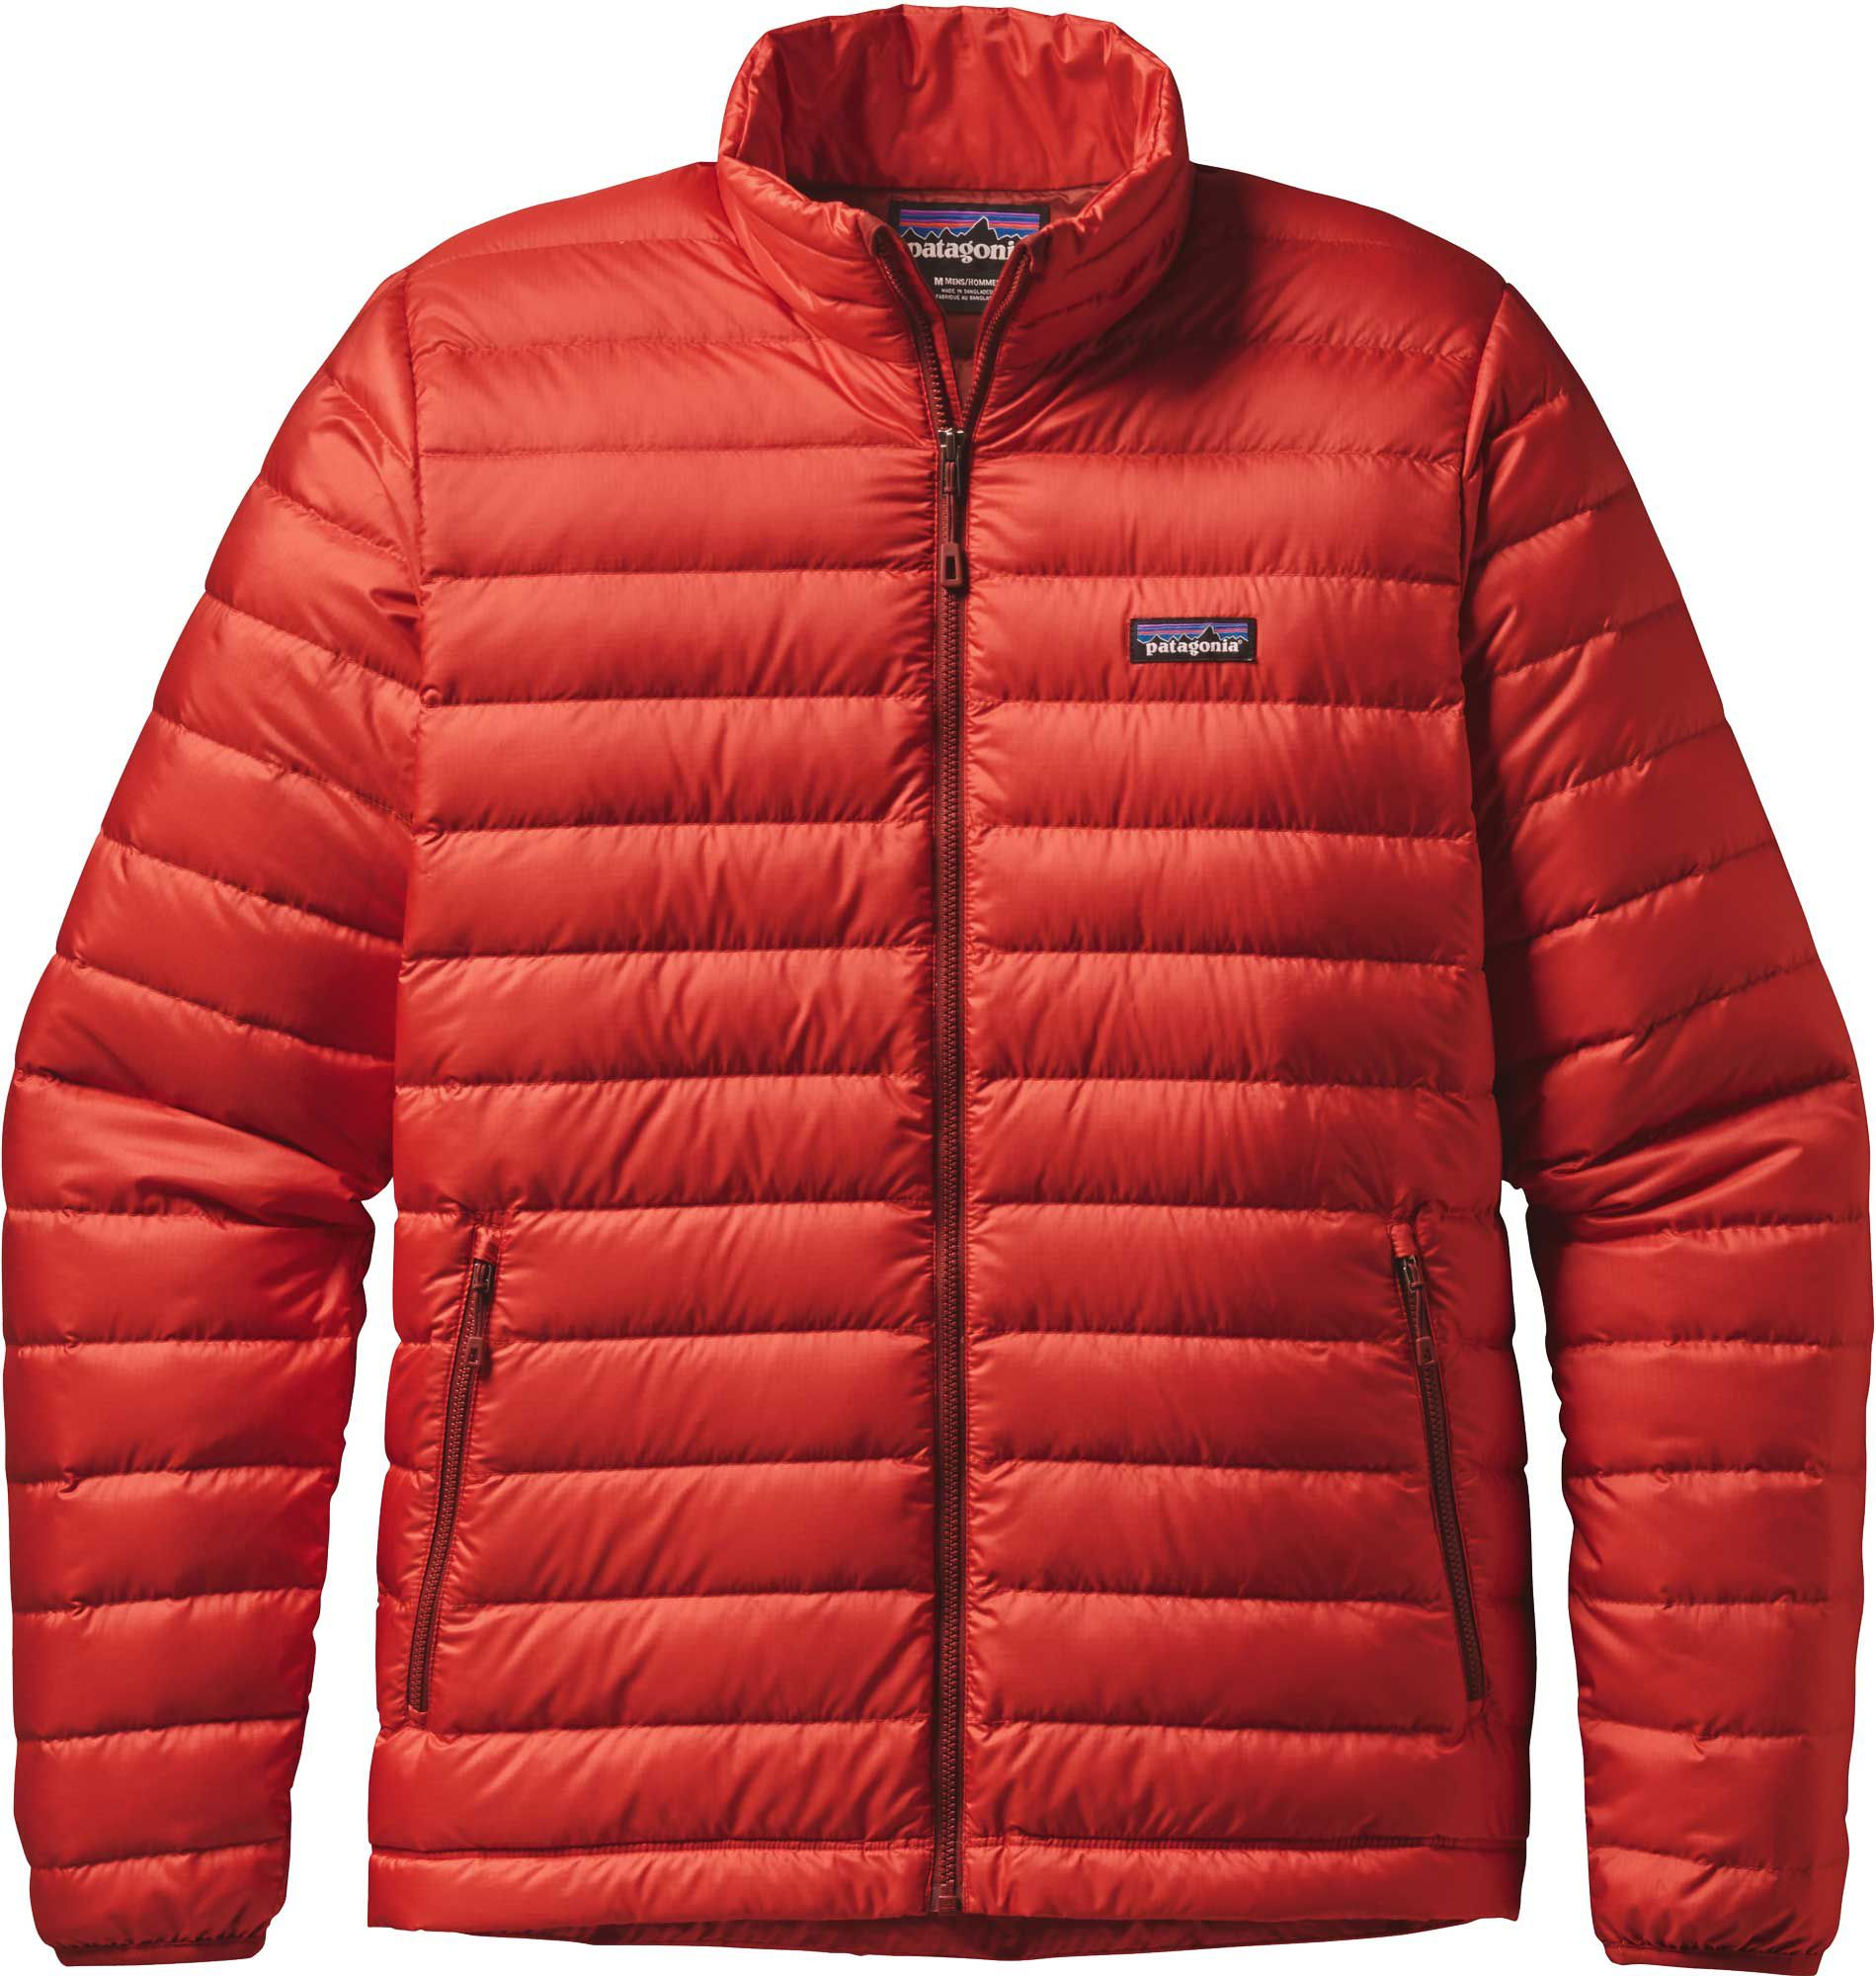 Patagonia Fleece Jackets, Pullovers & Vests | DICK'S Sporting Goods